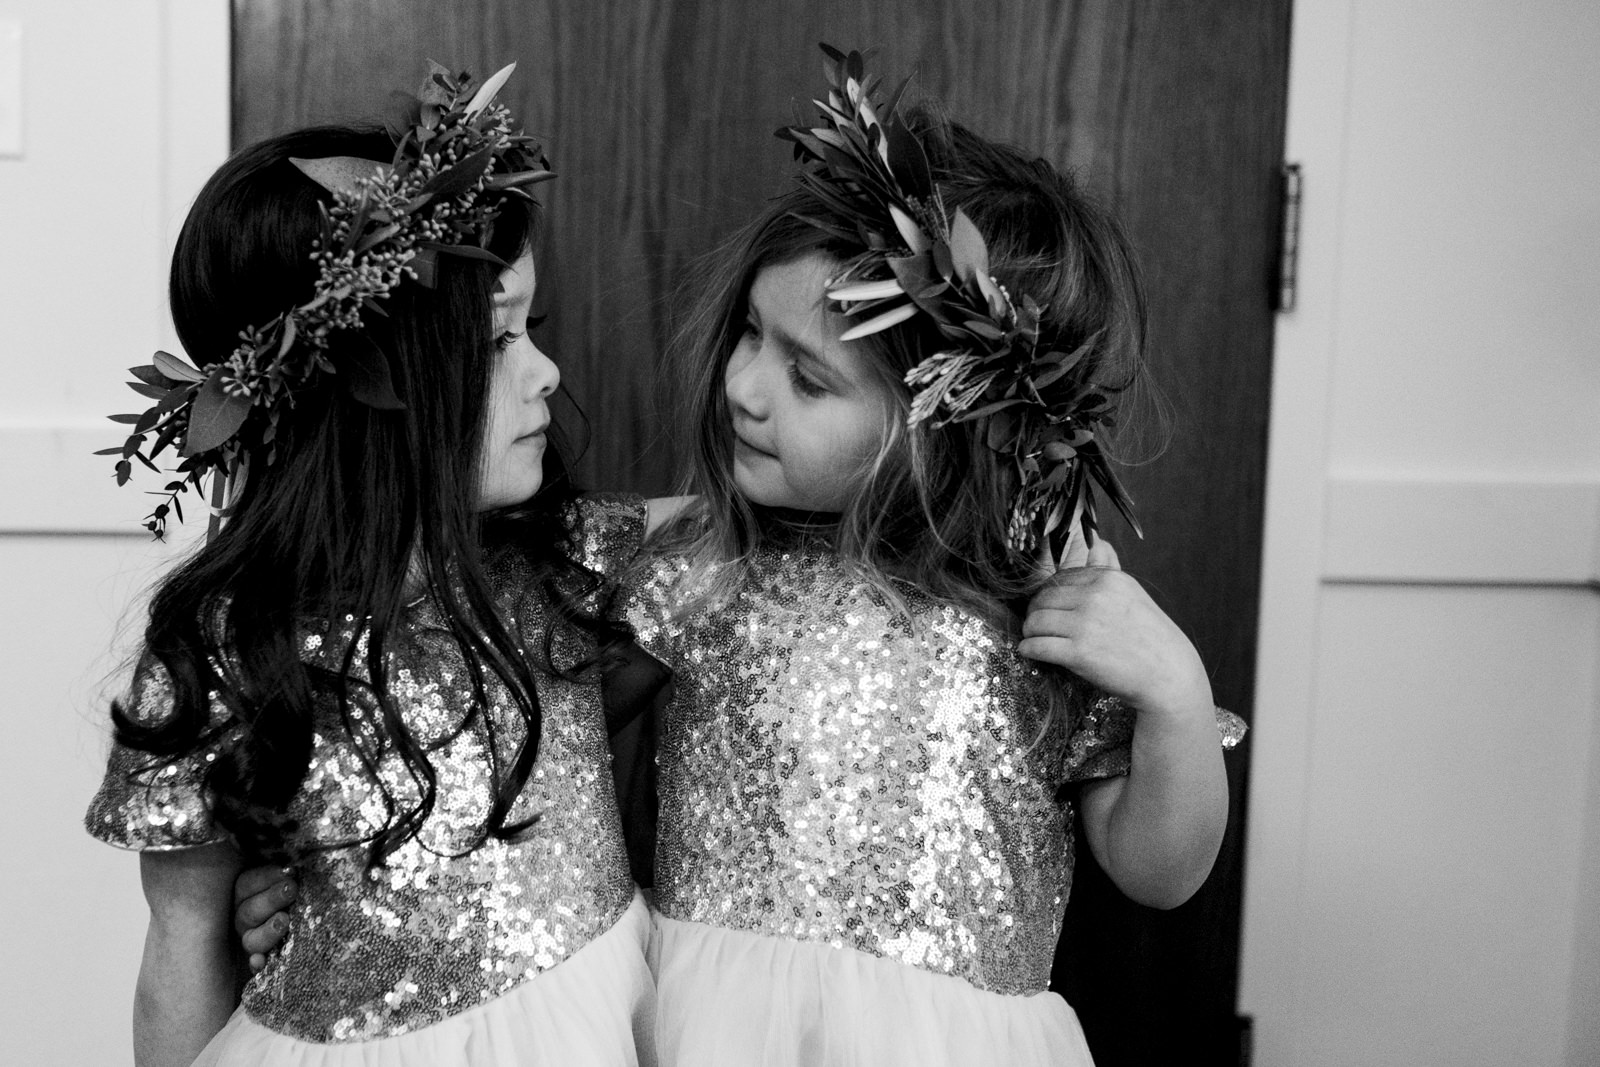 Flower girls with flower crowns and sequin dresses.